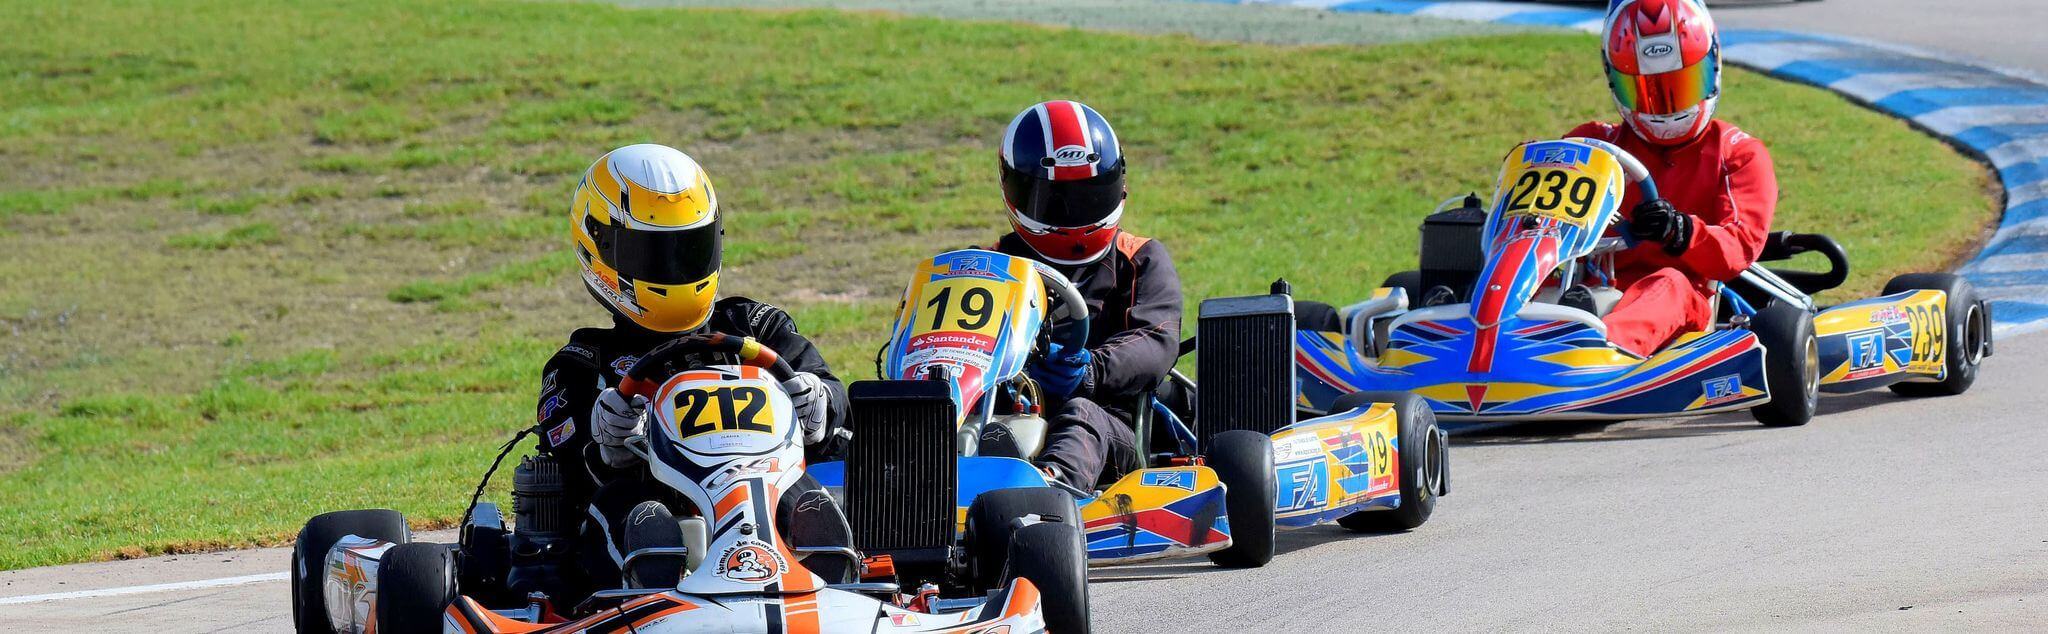 Karting in Armagh